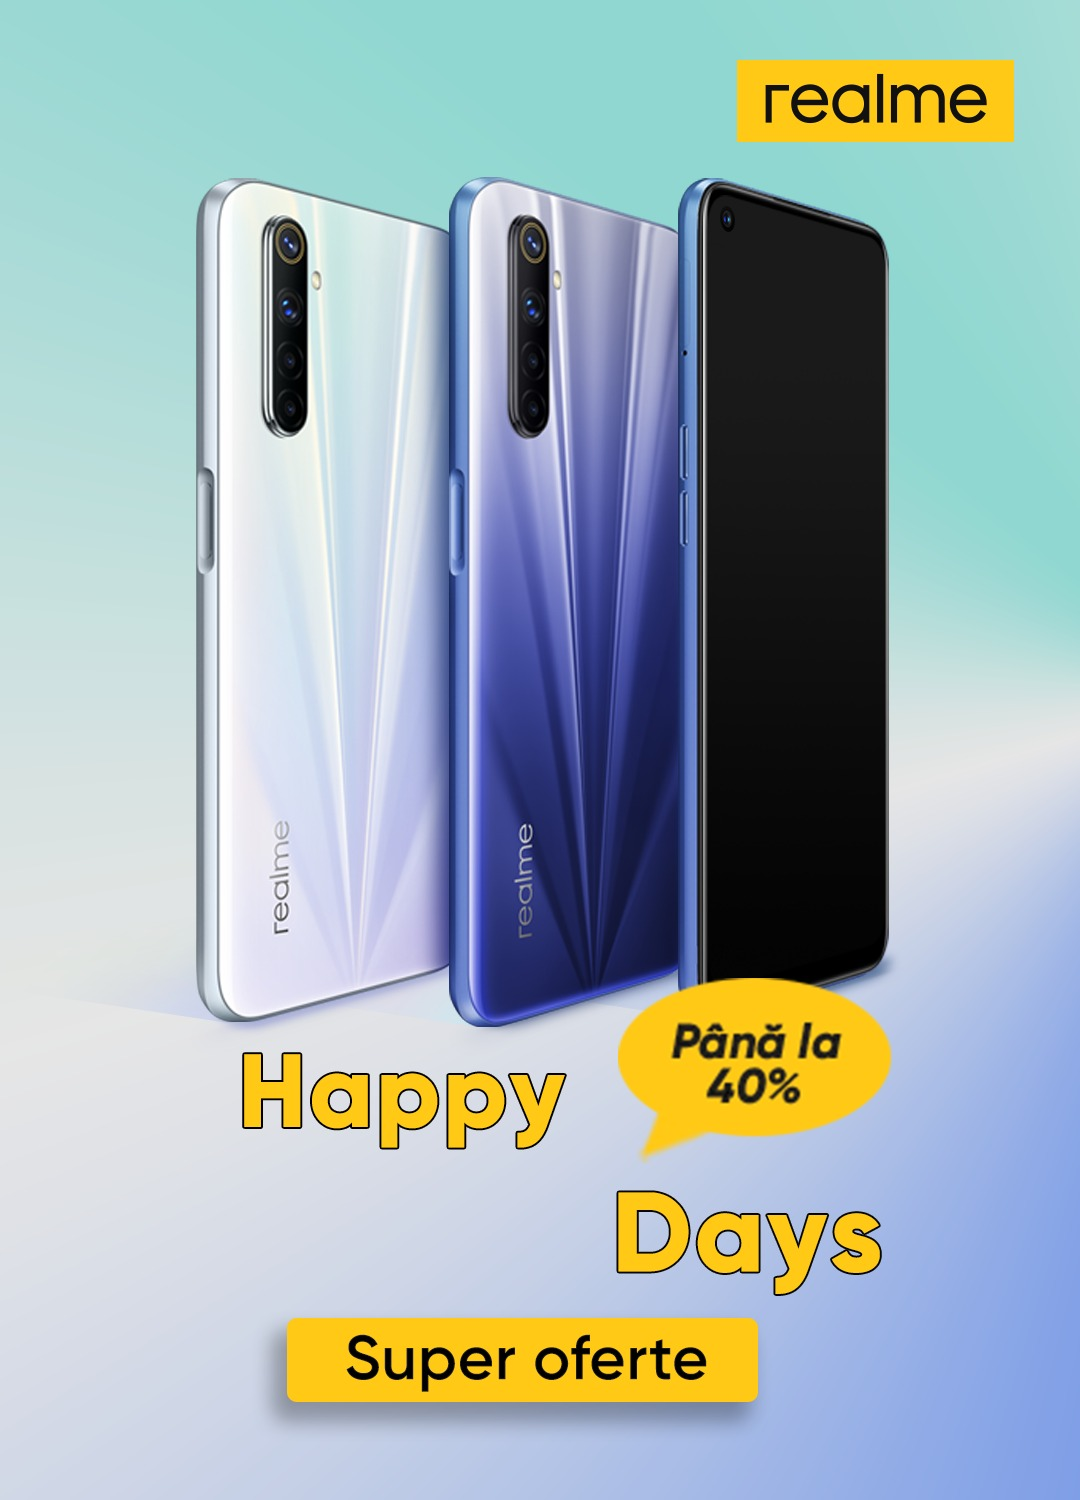 realme anunță ofertele Happy Days